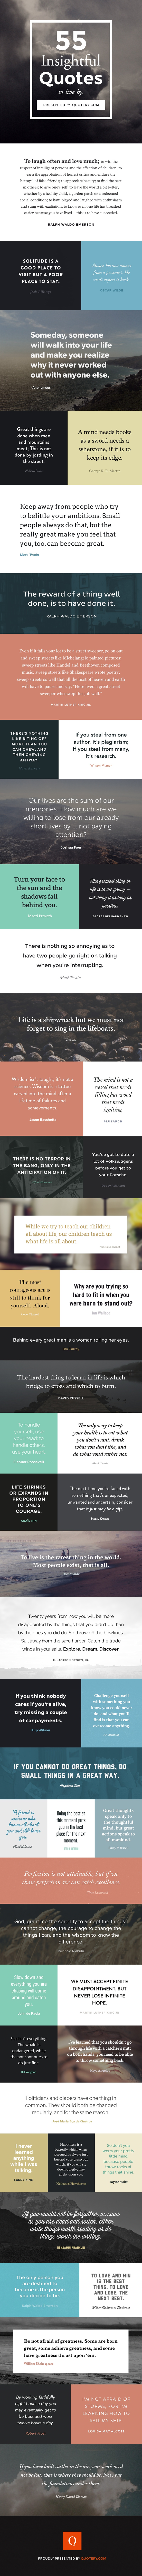 55-insightful-quotes-to-live-by-infographic